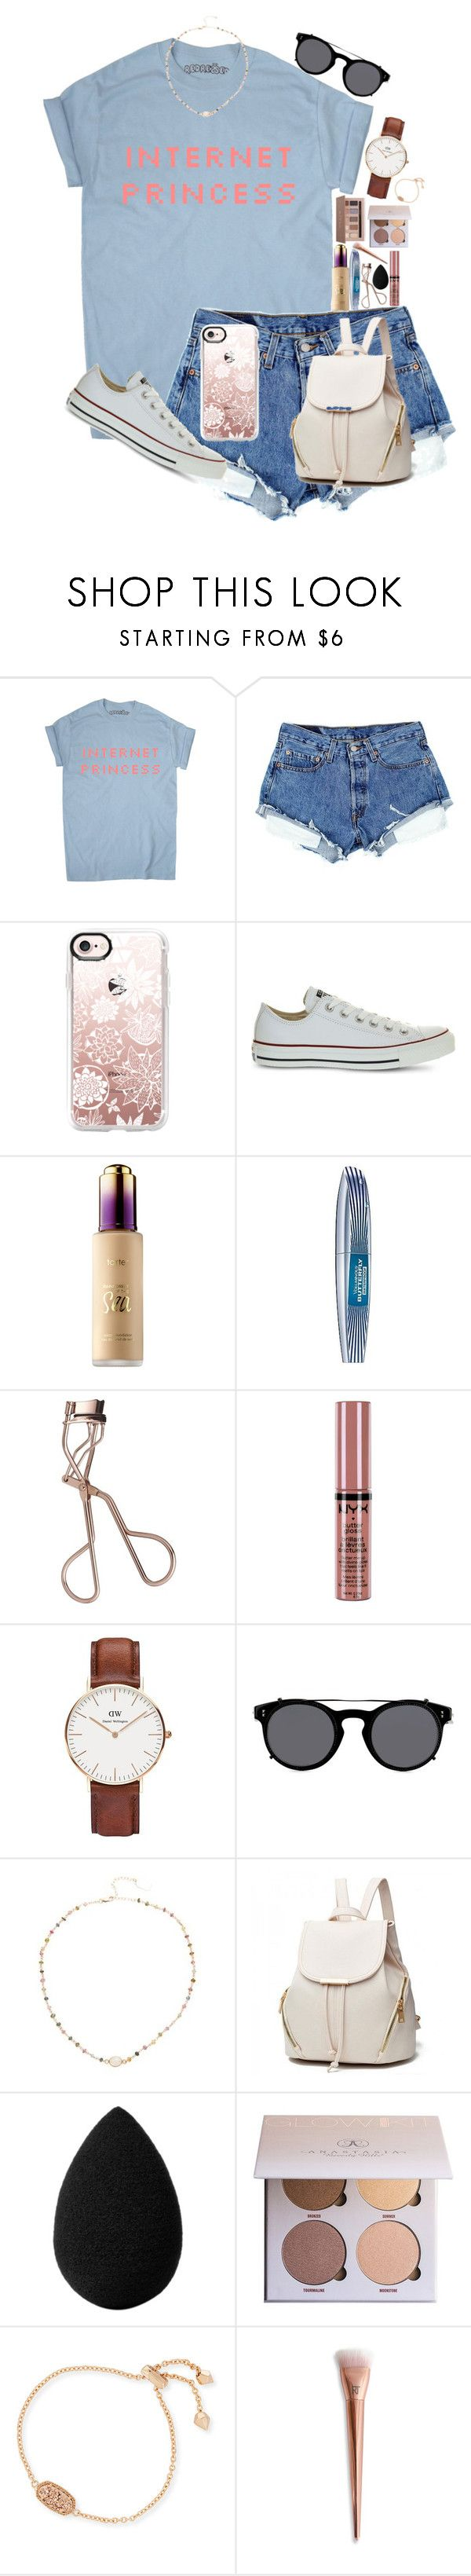 """""""«most girls»"""" by lizxlol on Polyvore featuring Casetify, Converse, Sephora Collection, L'Oréal Paris, Charlotte Tilbury, NYX, Daniel Wellington, Valentino, Ela Rae and beautyblender"""